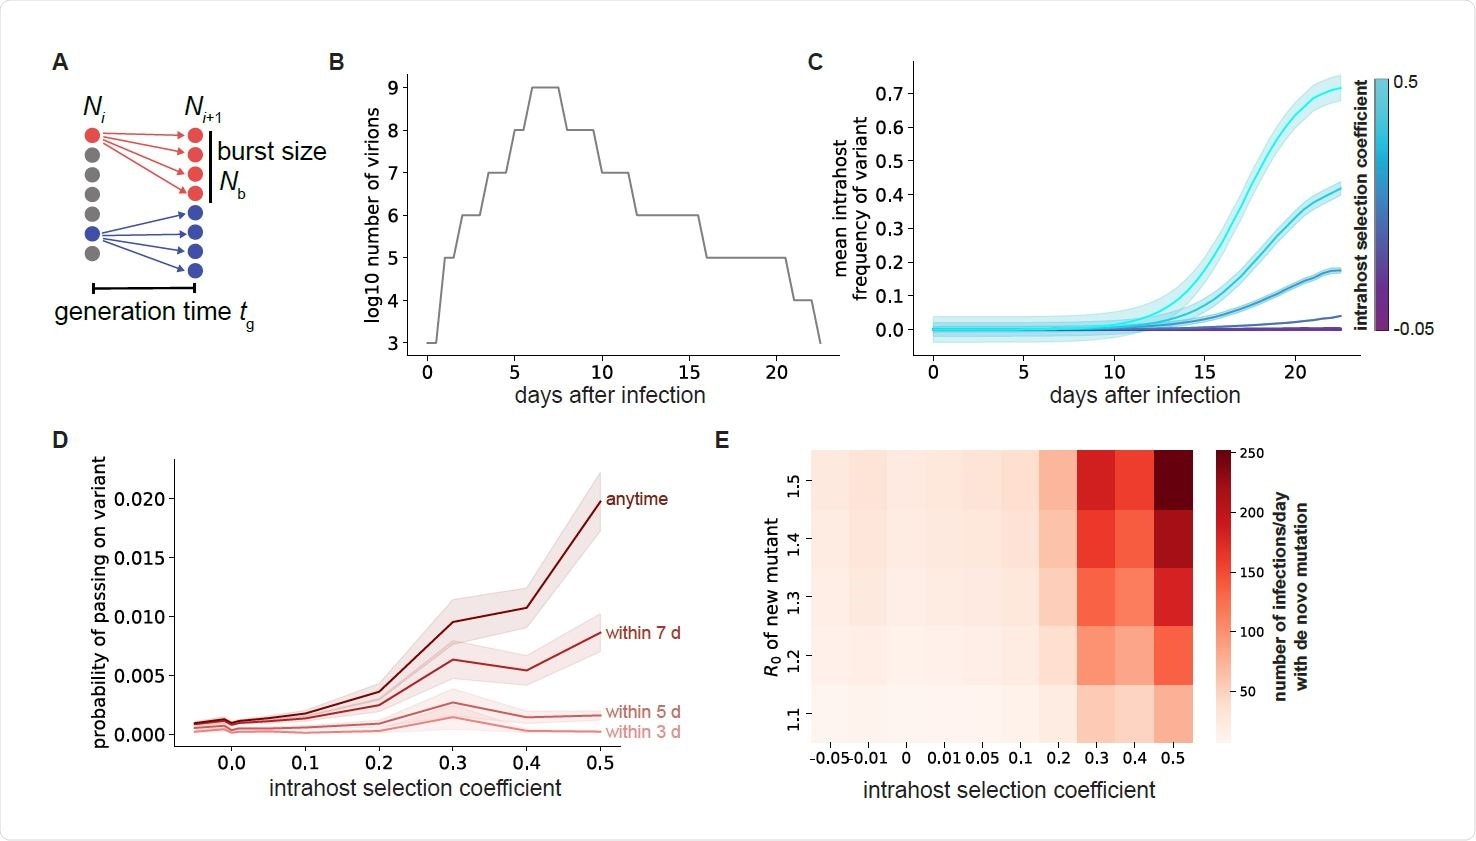 Selection within individuals with COVID-19 leads to selection of more fit viral variants. A. Schematic of viral replication model used to simulate SARS-CoV-2 evolutionary dynamics. B. Sputum viral load curve for a typical COVID-19 infection. The x-axis represents the time starting from the initial transmission event that started the infection. C. Mean frequency of variants with point mutations within individuals with COVID-19 for different mutation fitness effects (colors). D. Probability of a specific single mutation to be present in at least one virion transmitted if transmission occurs within the first 3-7 days of infection (lighter red curves) or anytime during infection (darker red). For C and D, shaded areas represent ± SEM,